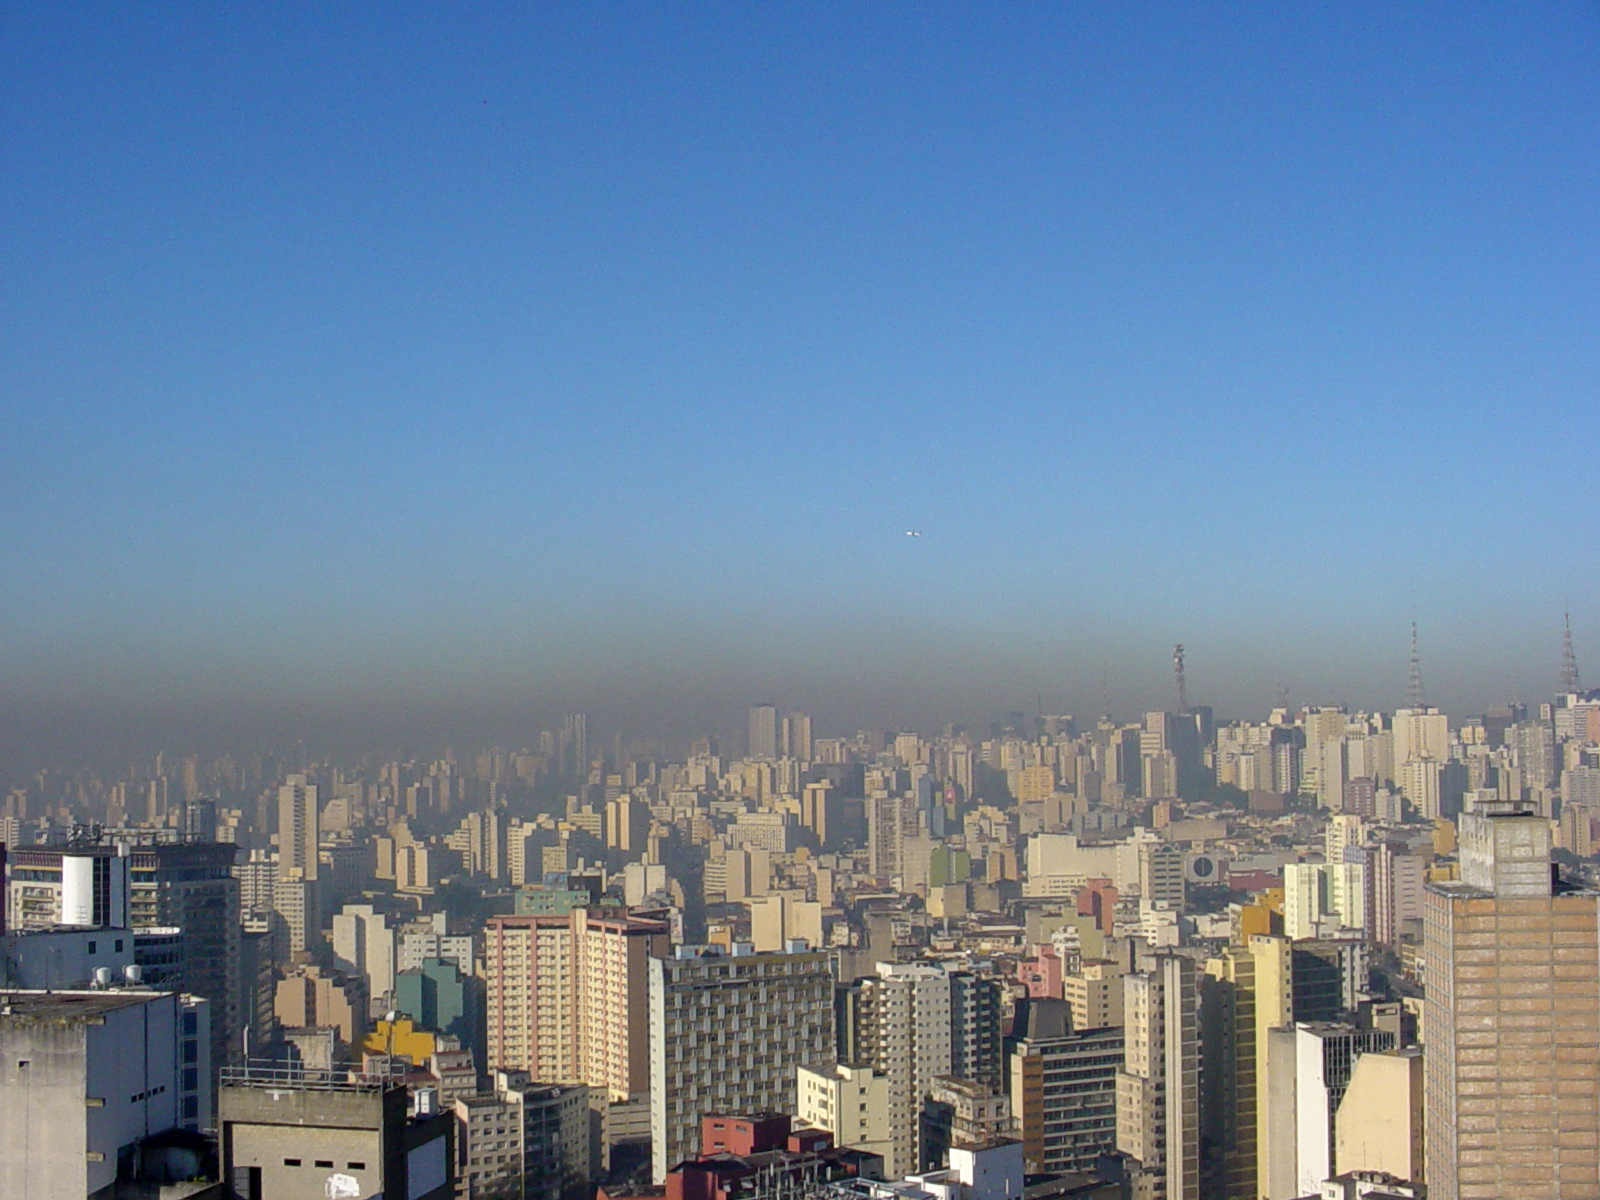 Pollution over São Paulo city in winter.